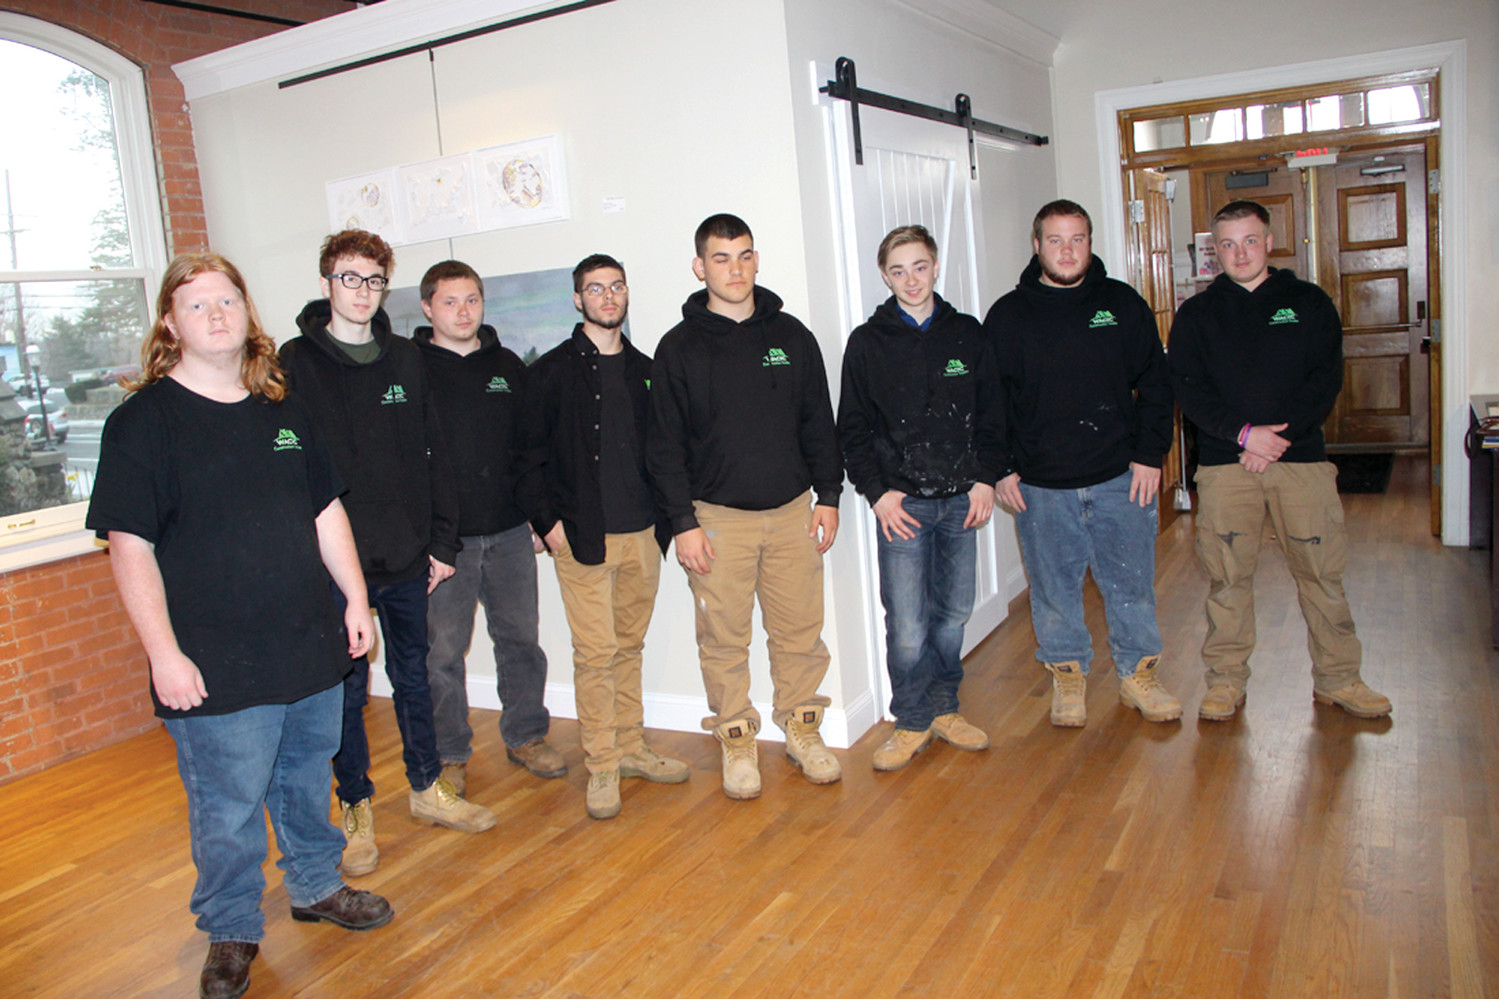 ON EXHIBIT: Warwick Area Career and Technical Center construction trades students created a storage area at the Warwick Center for the Arts by moving a wall and creating a room. Standing in from of their work, which blended in with the gallery, even providing more display space are from left: Drew Hottes, Tyler Moran, Brandon Dutra, Zachary Corey, William Martino, Emidio DeSousa-Rosa, Ryan Pietros and Tyler Scotti.